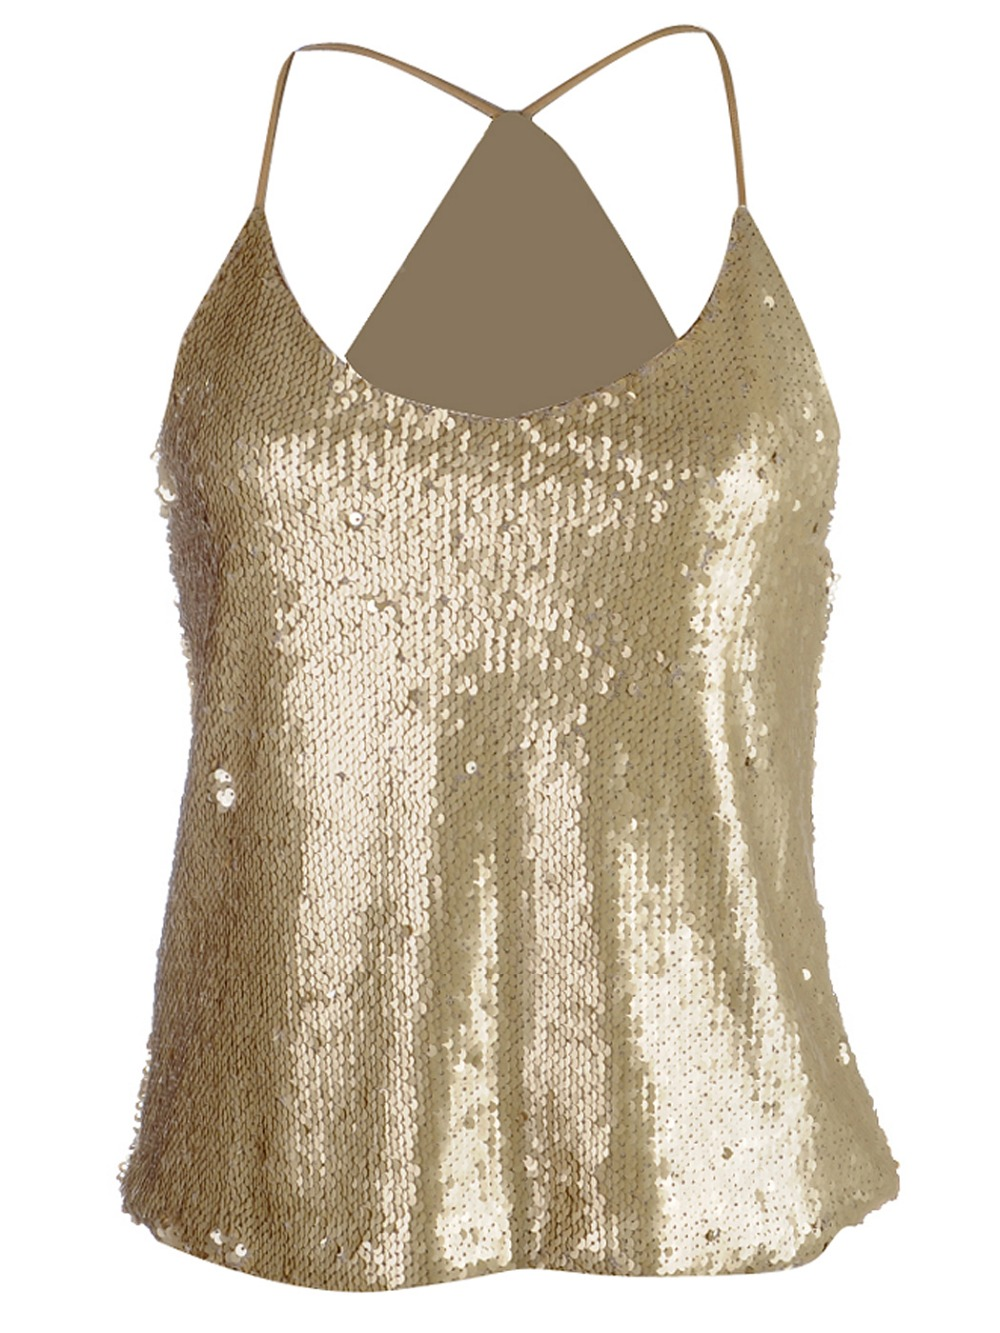 Fashion women sexy gold sequin tops halter neck double sided applique